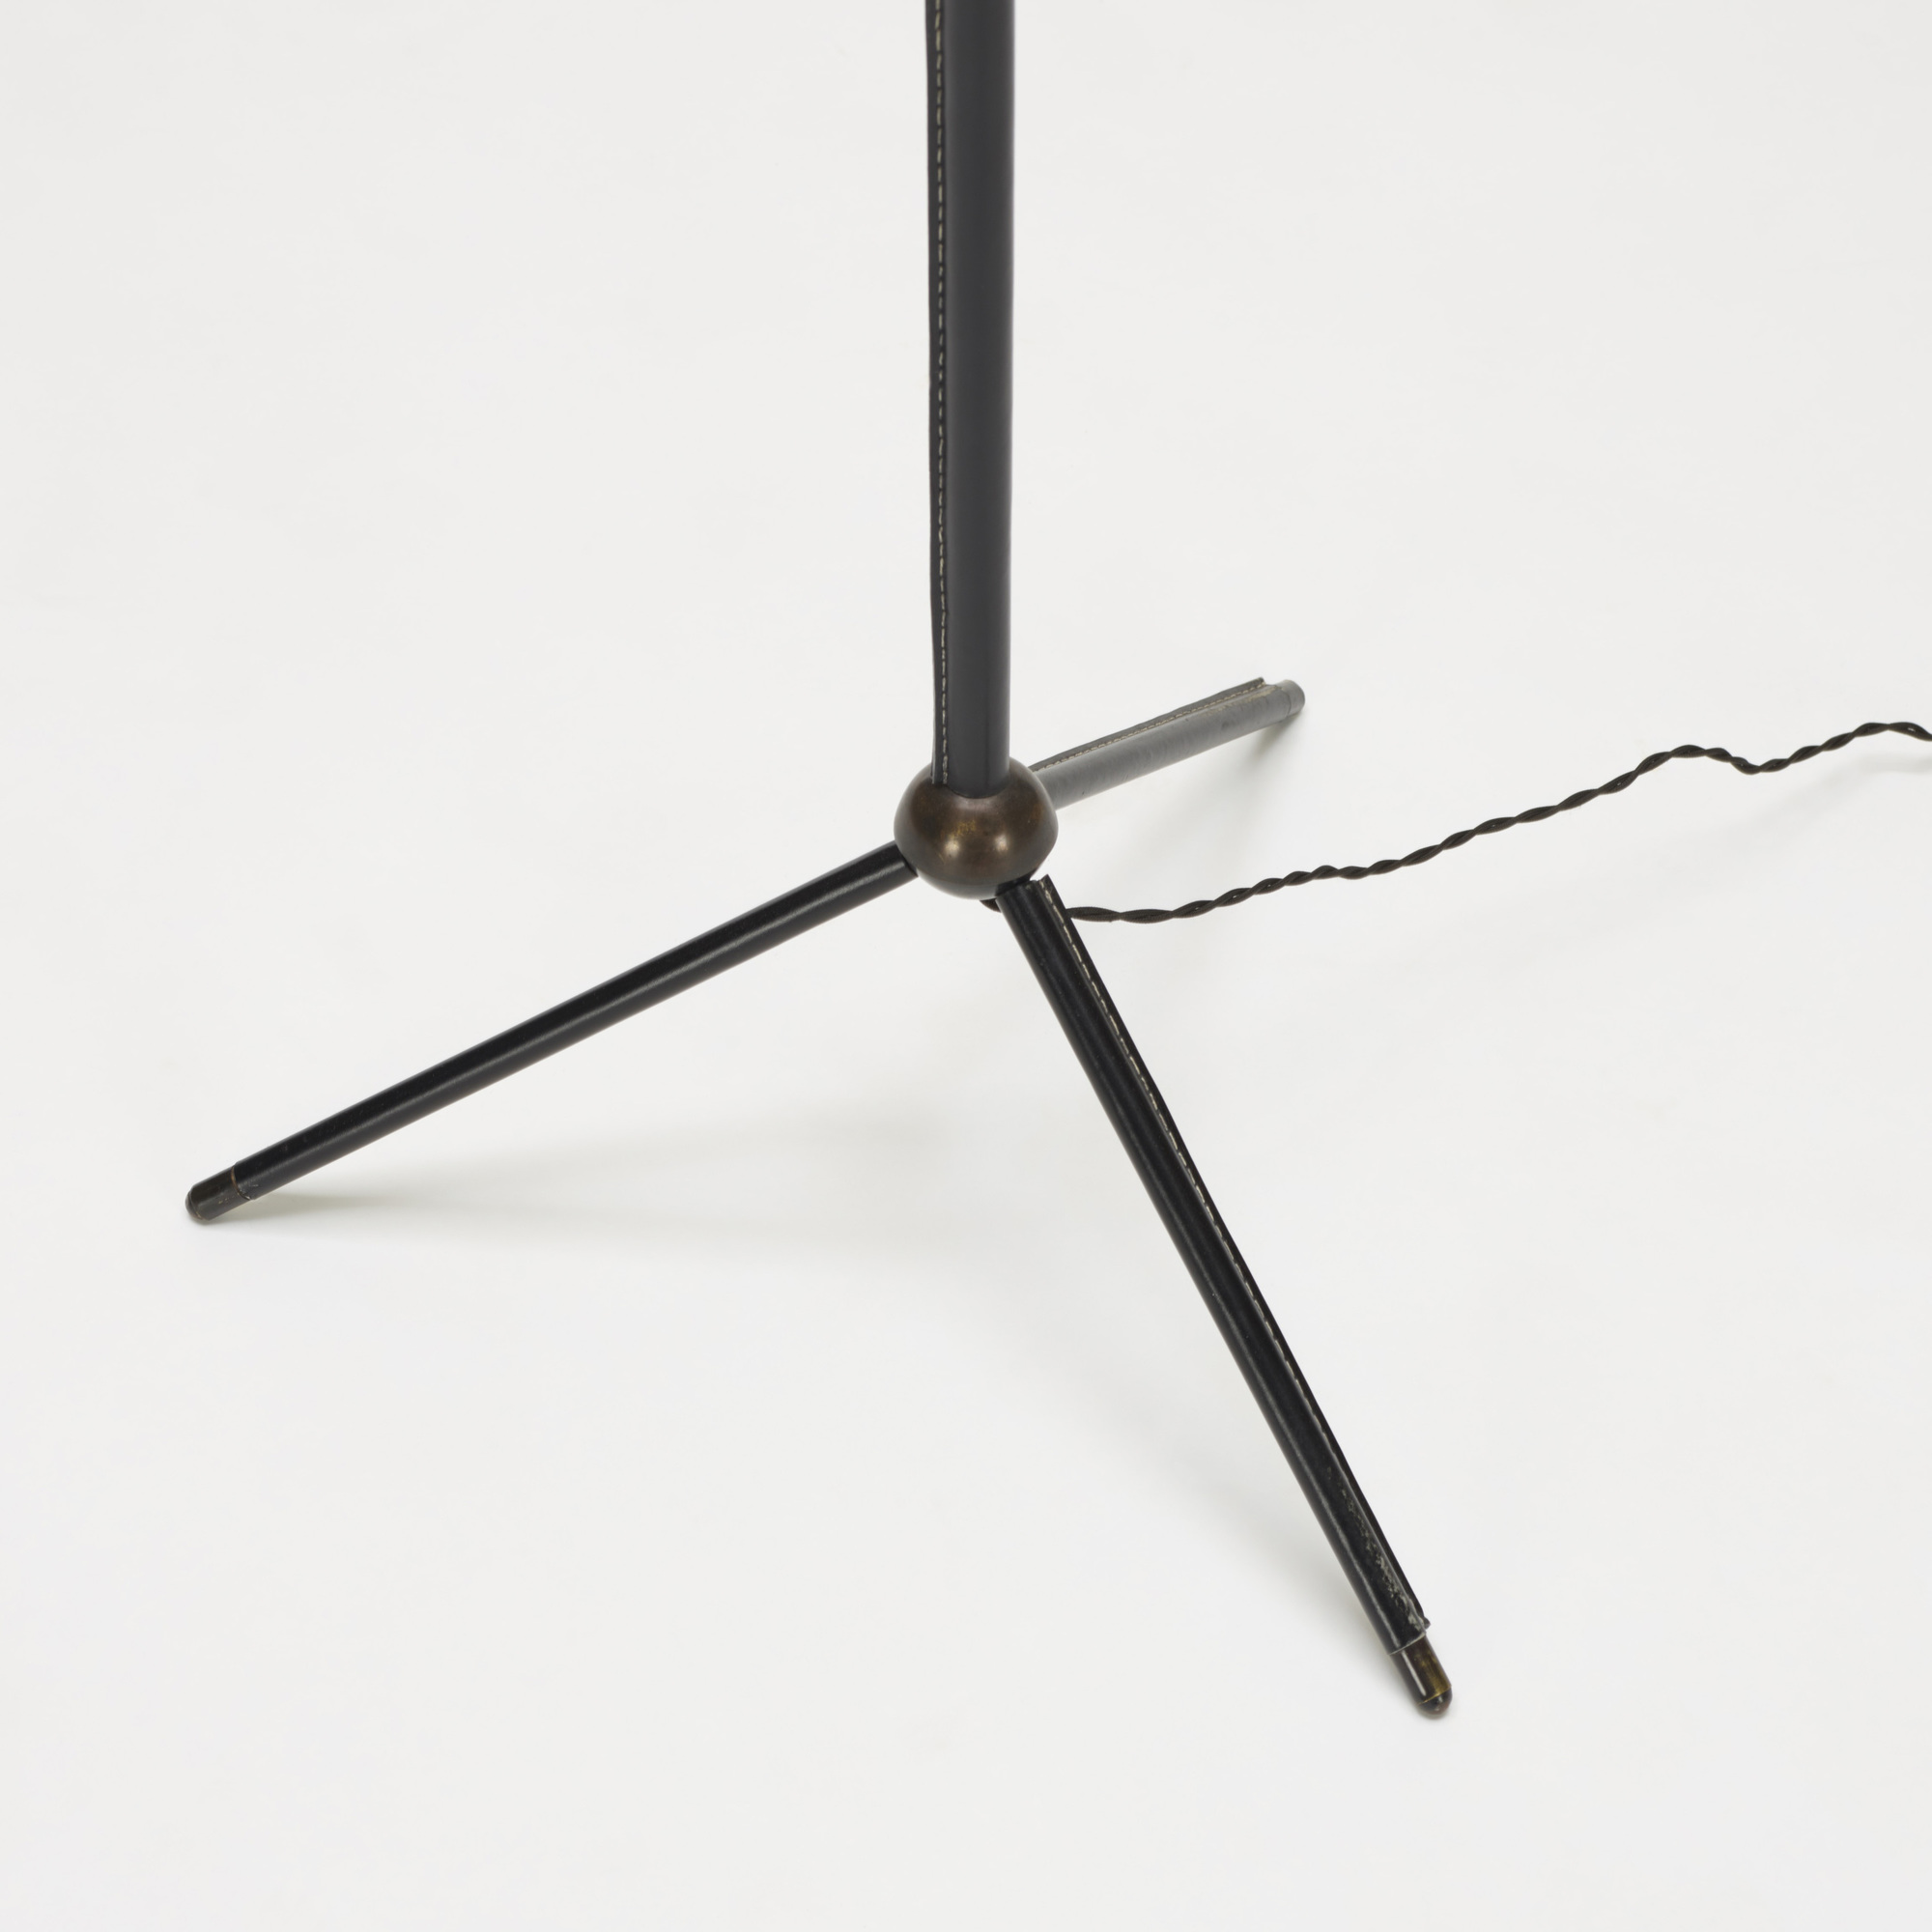 406: Jacques Adnet / floor lamp (4 of 4)